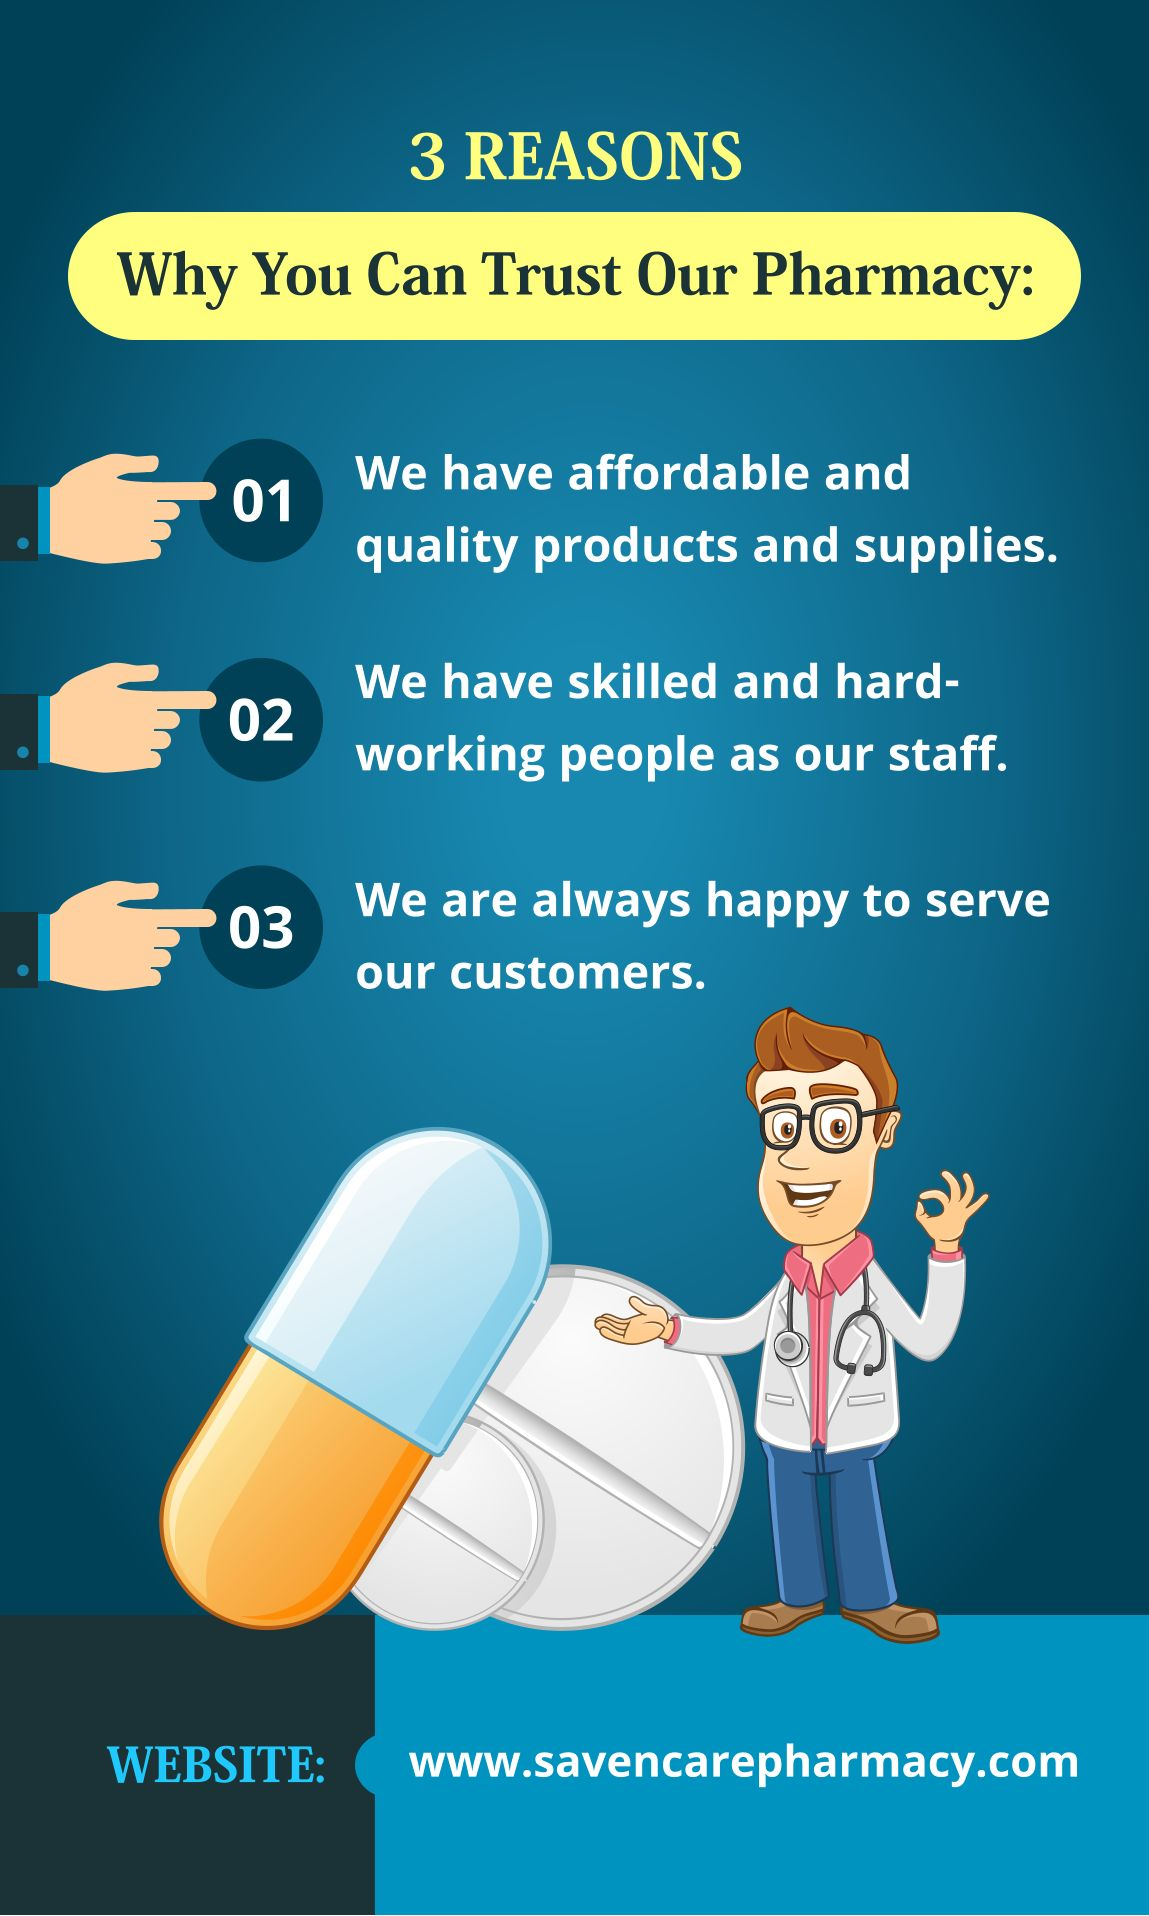 3 REASONS Why You Can Trust Our Pharmacy trustourpharmacy